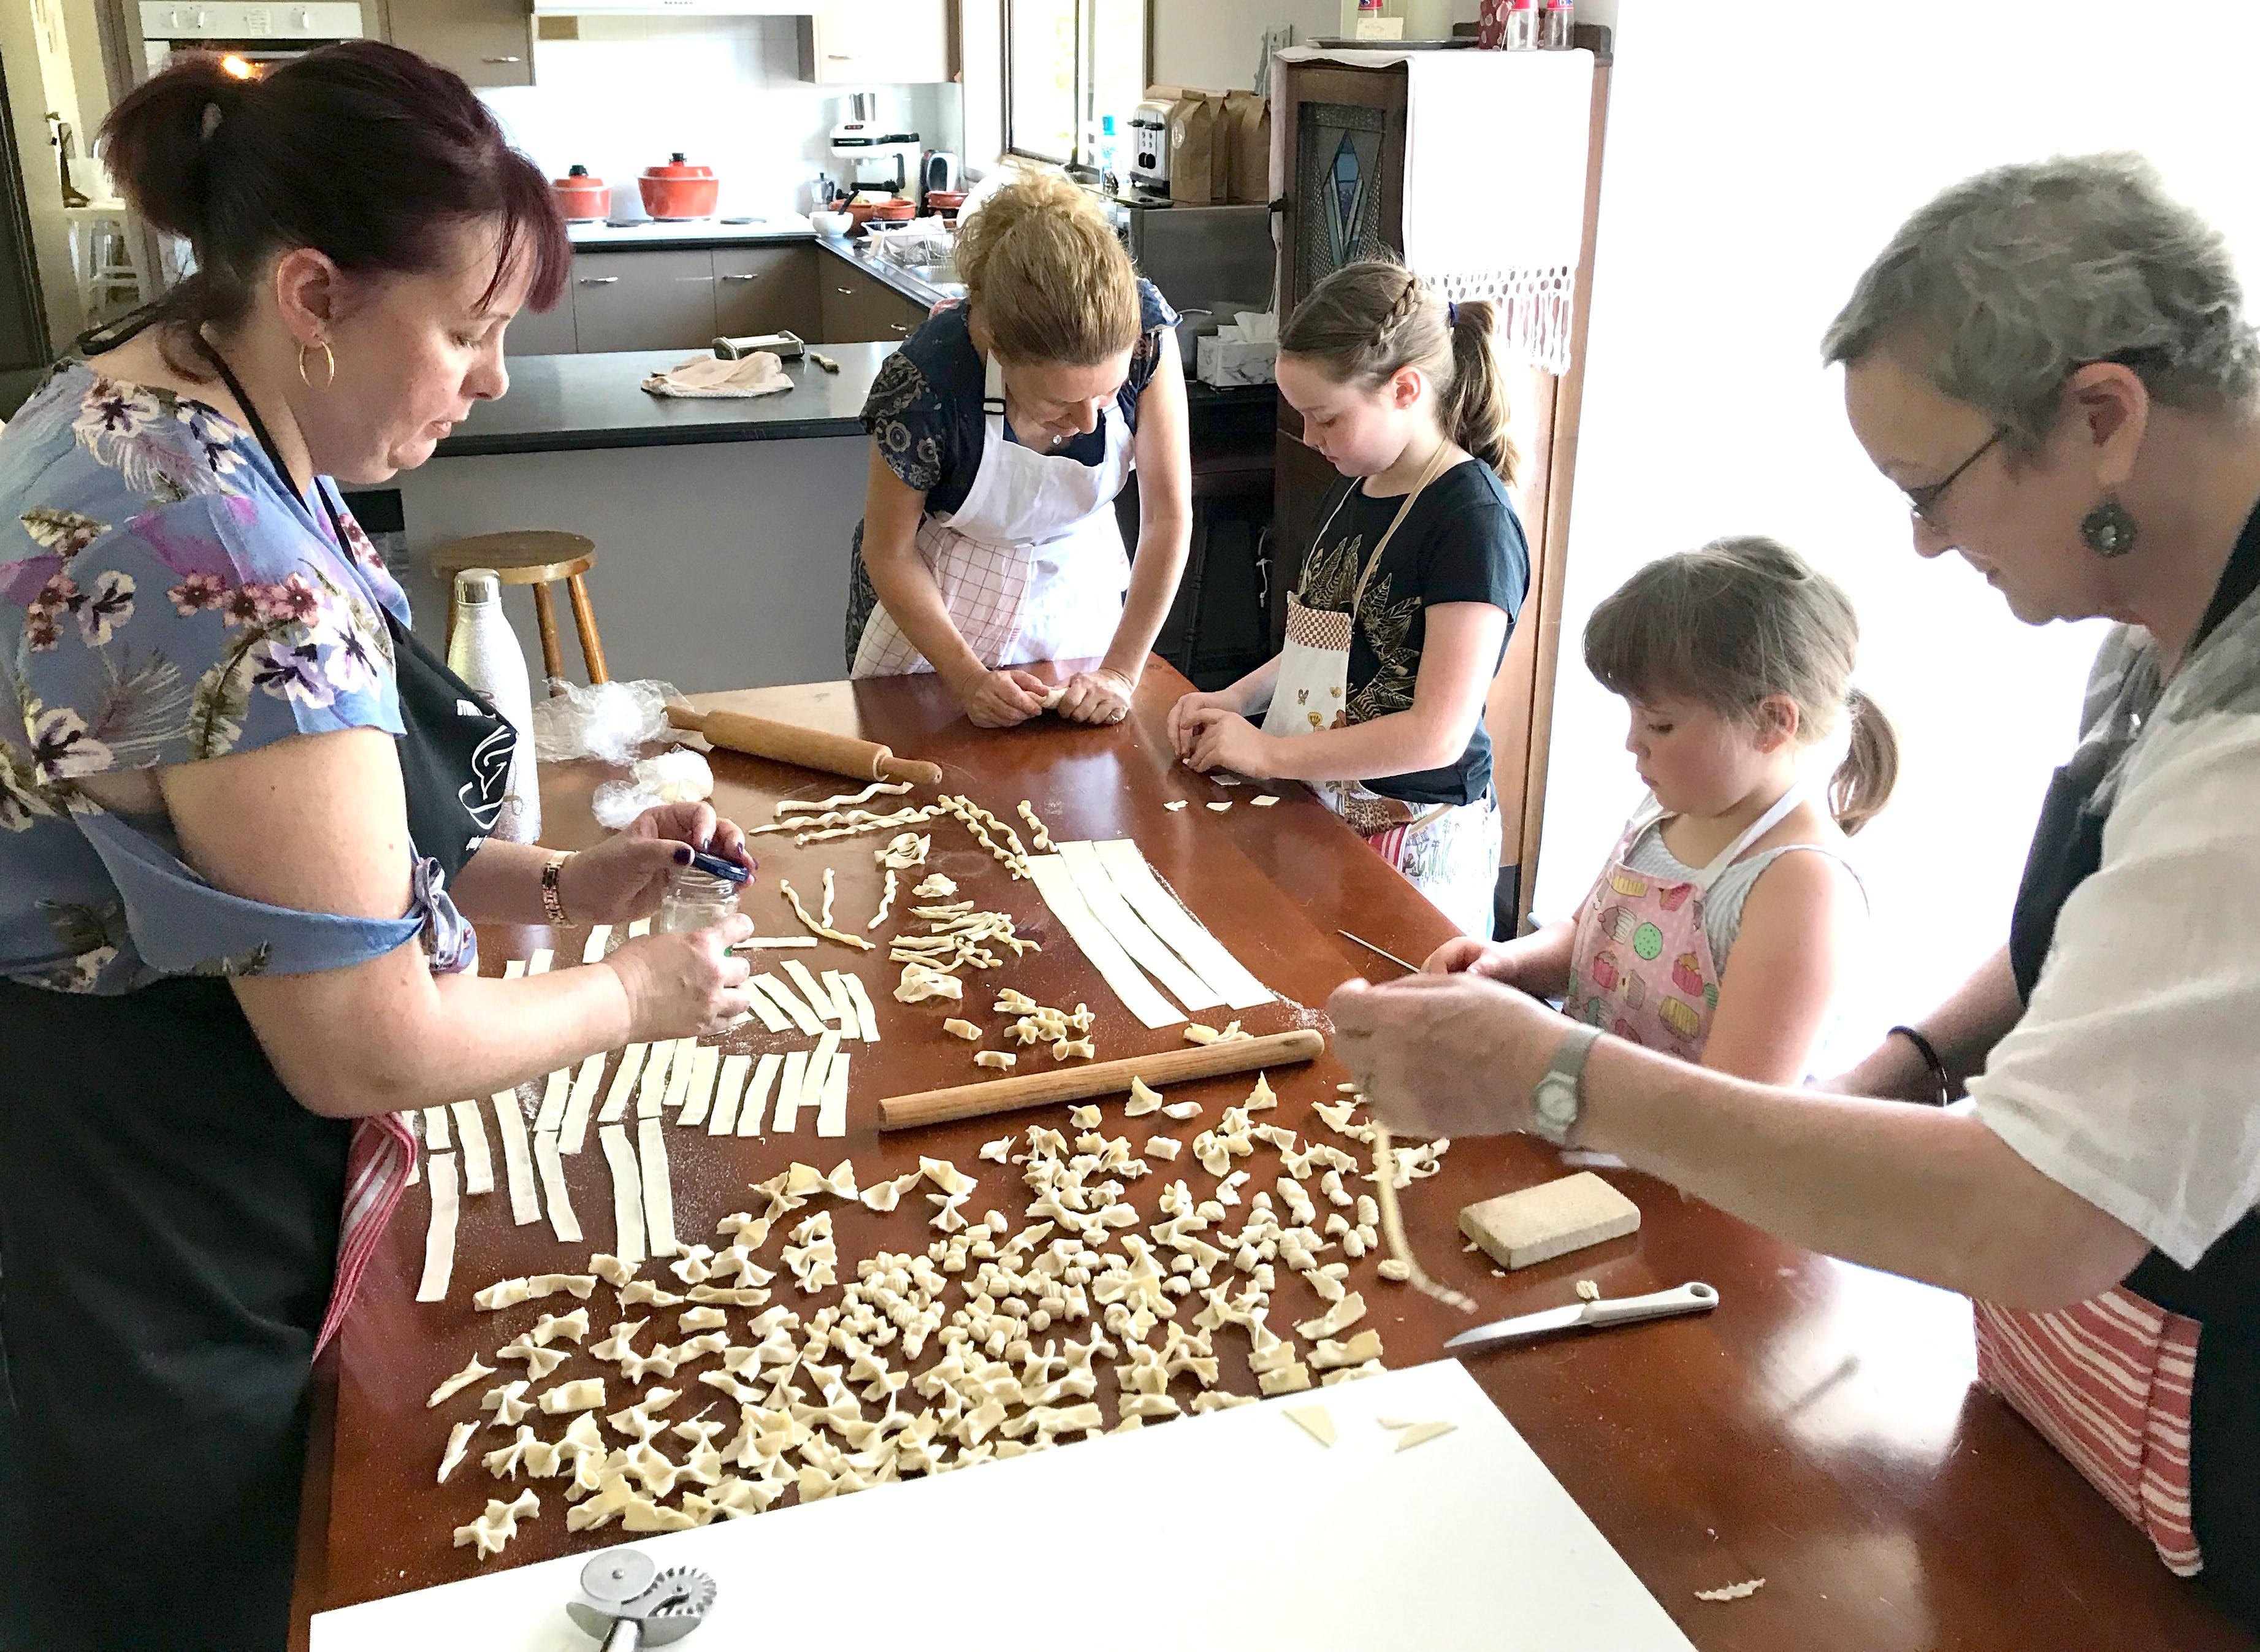 Kids Pasta Making Class - hands on fun at your house - Accommodation Whitsundays